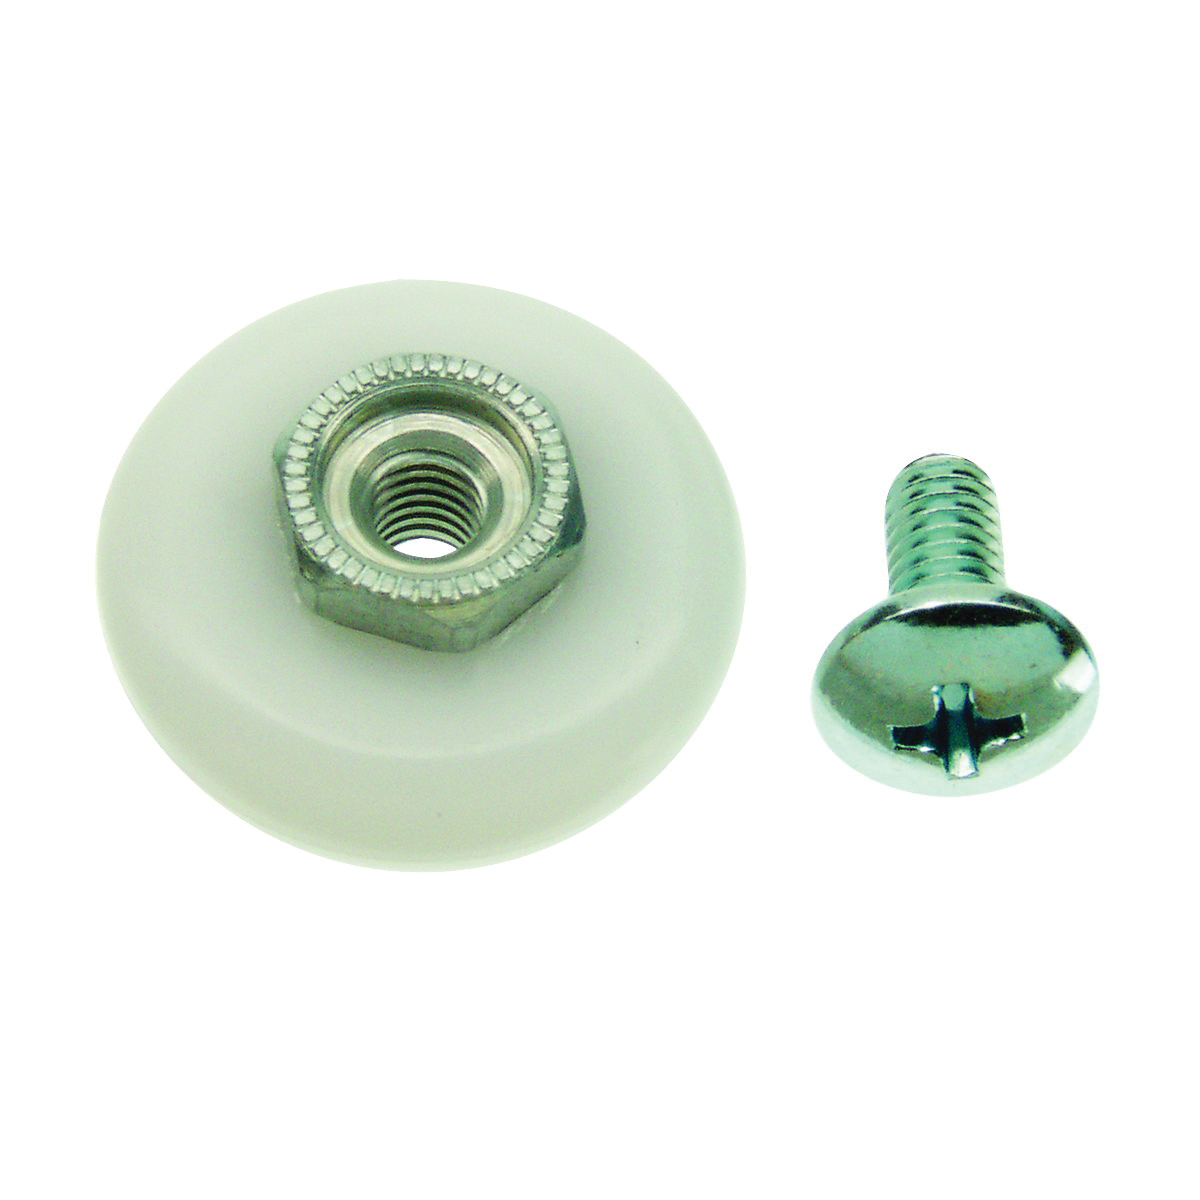 Picture of Danco 64652B Door Roller, Nylon, For: Shower Doors